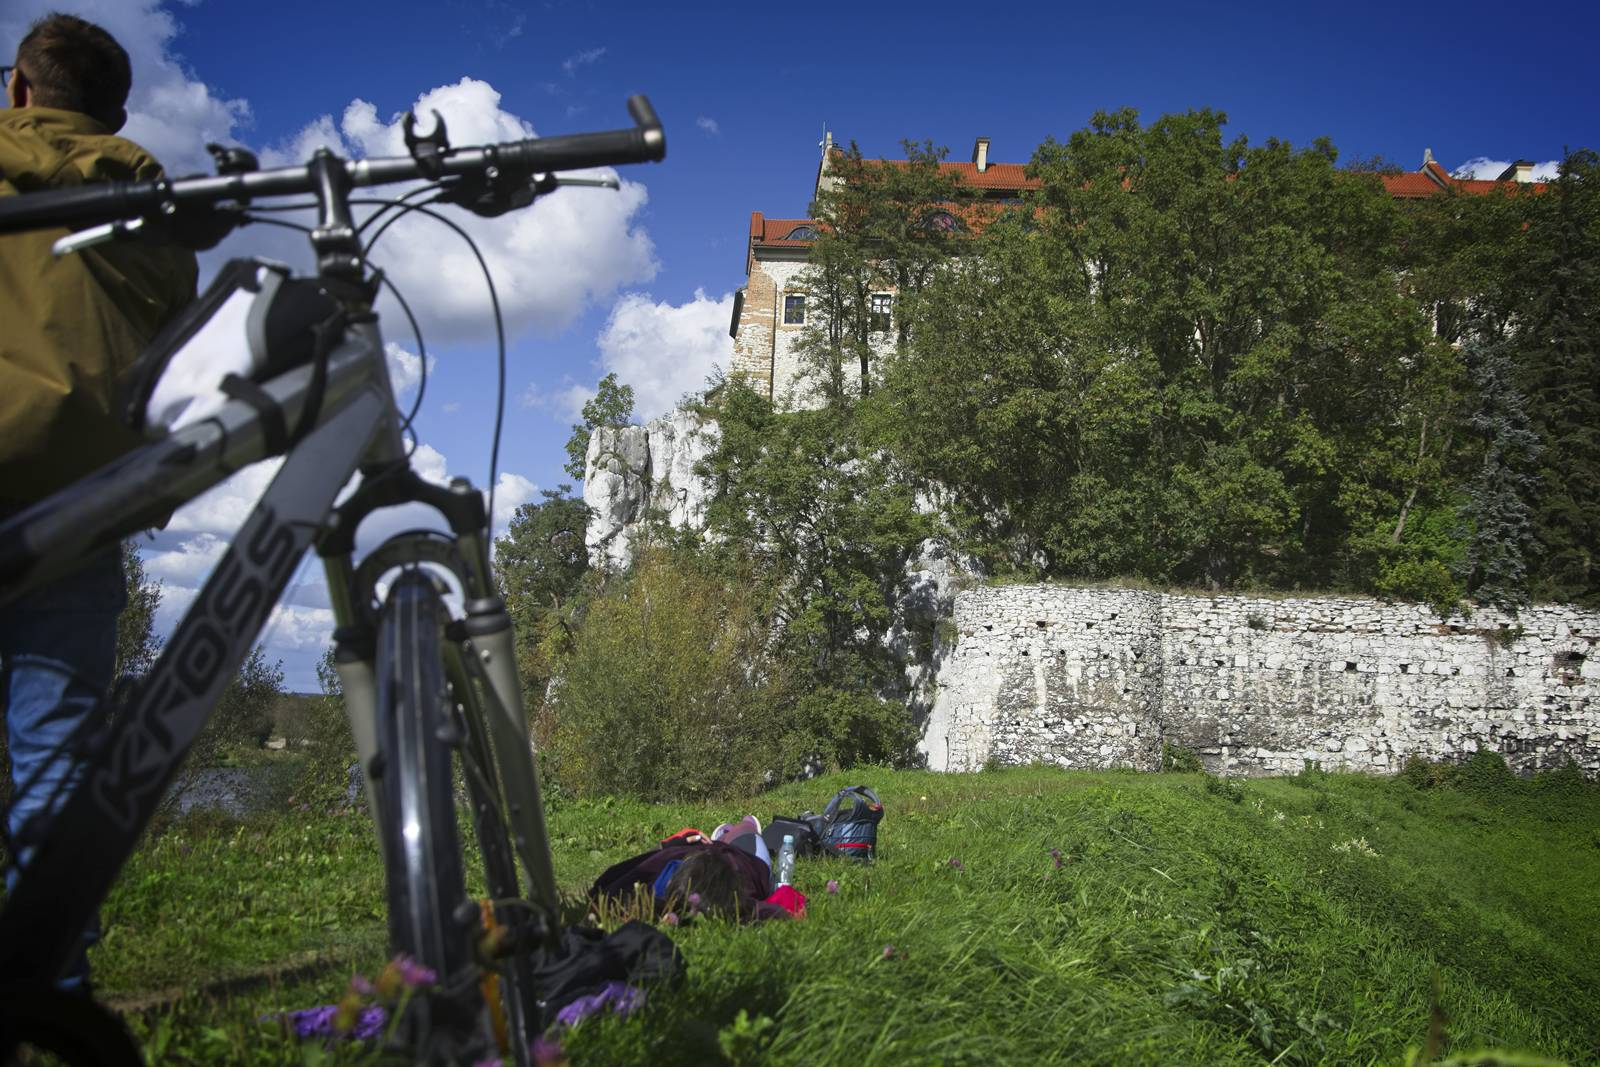 tyniec monastery cracow off the beaten track churches in cracow where to go on bike in cracow